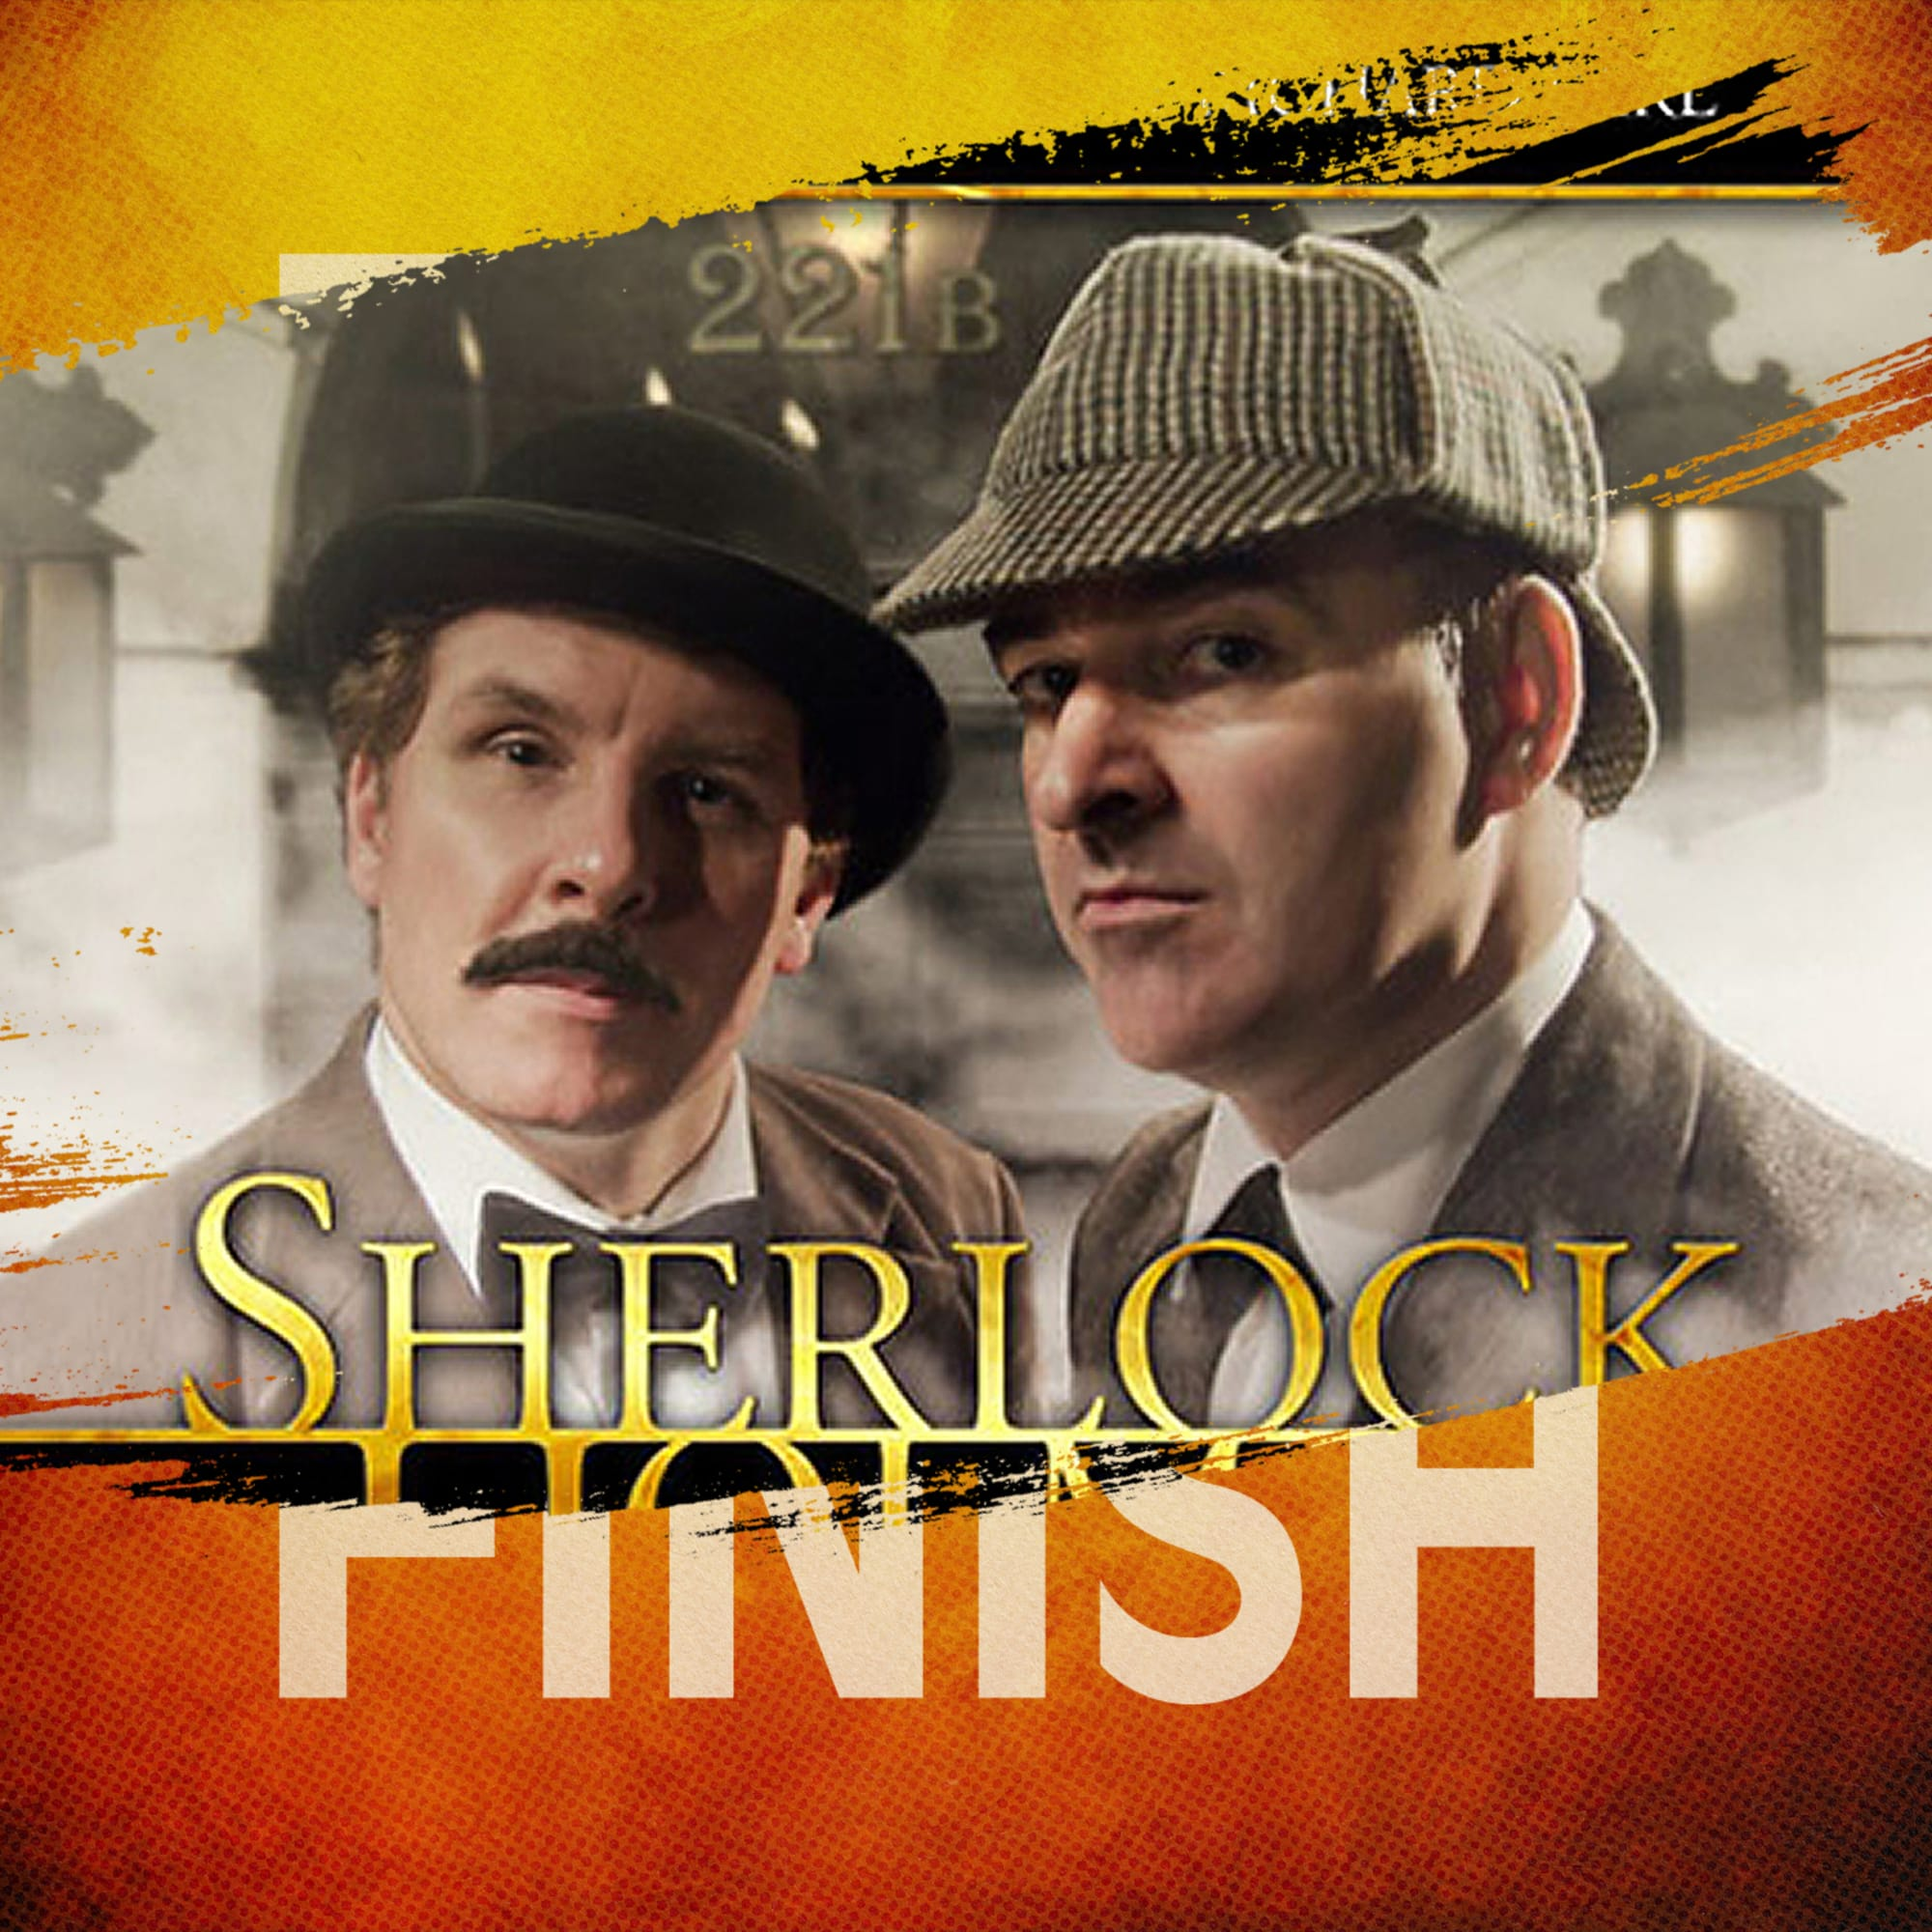 Doctor Who fans: Why you should check out Big Finish's Sherlock Holmes audios